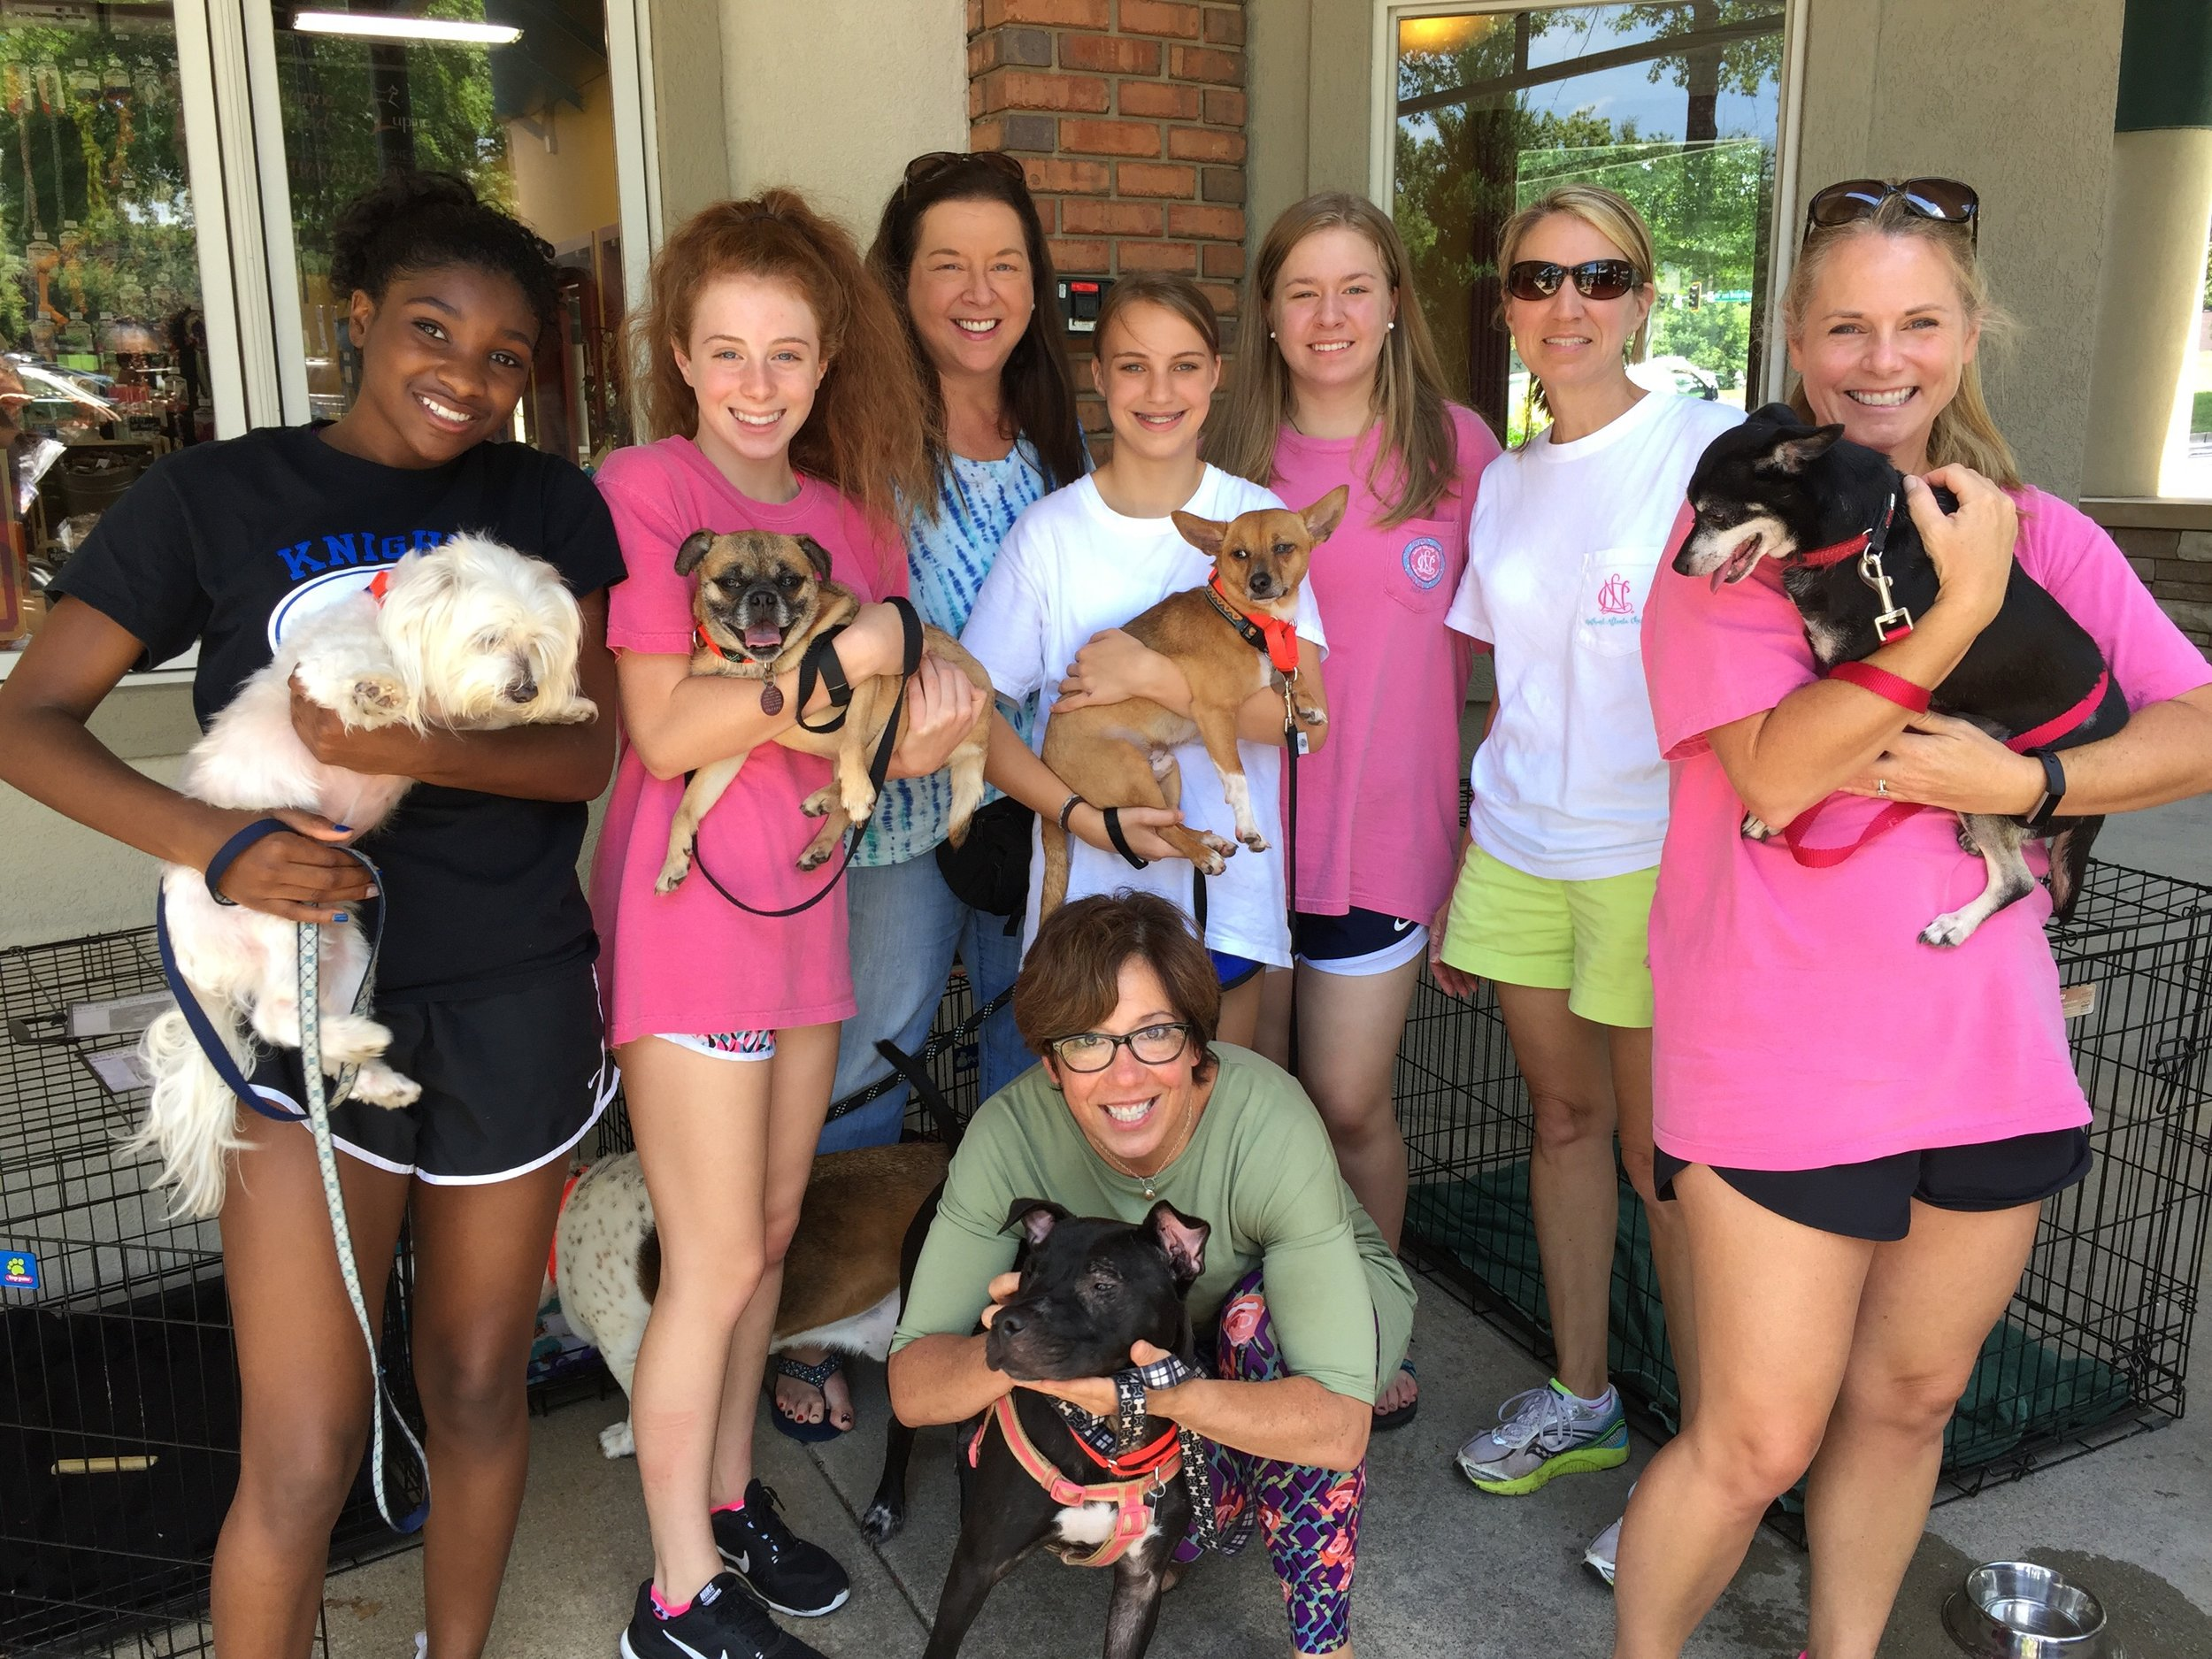 Volunteering on vacation can be a furry good time, especially at Furkids in Atlanta